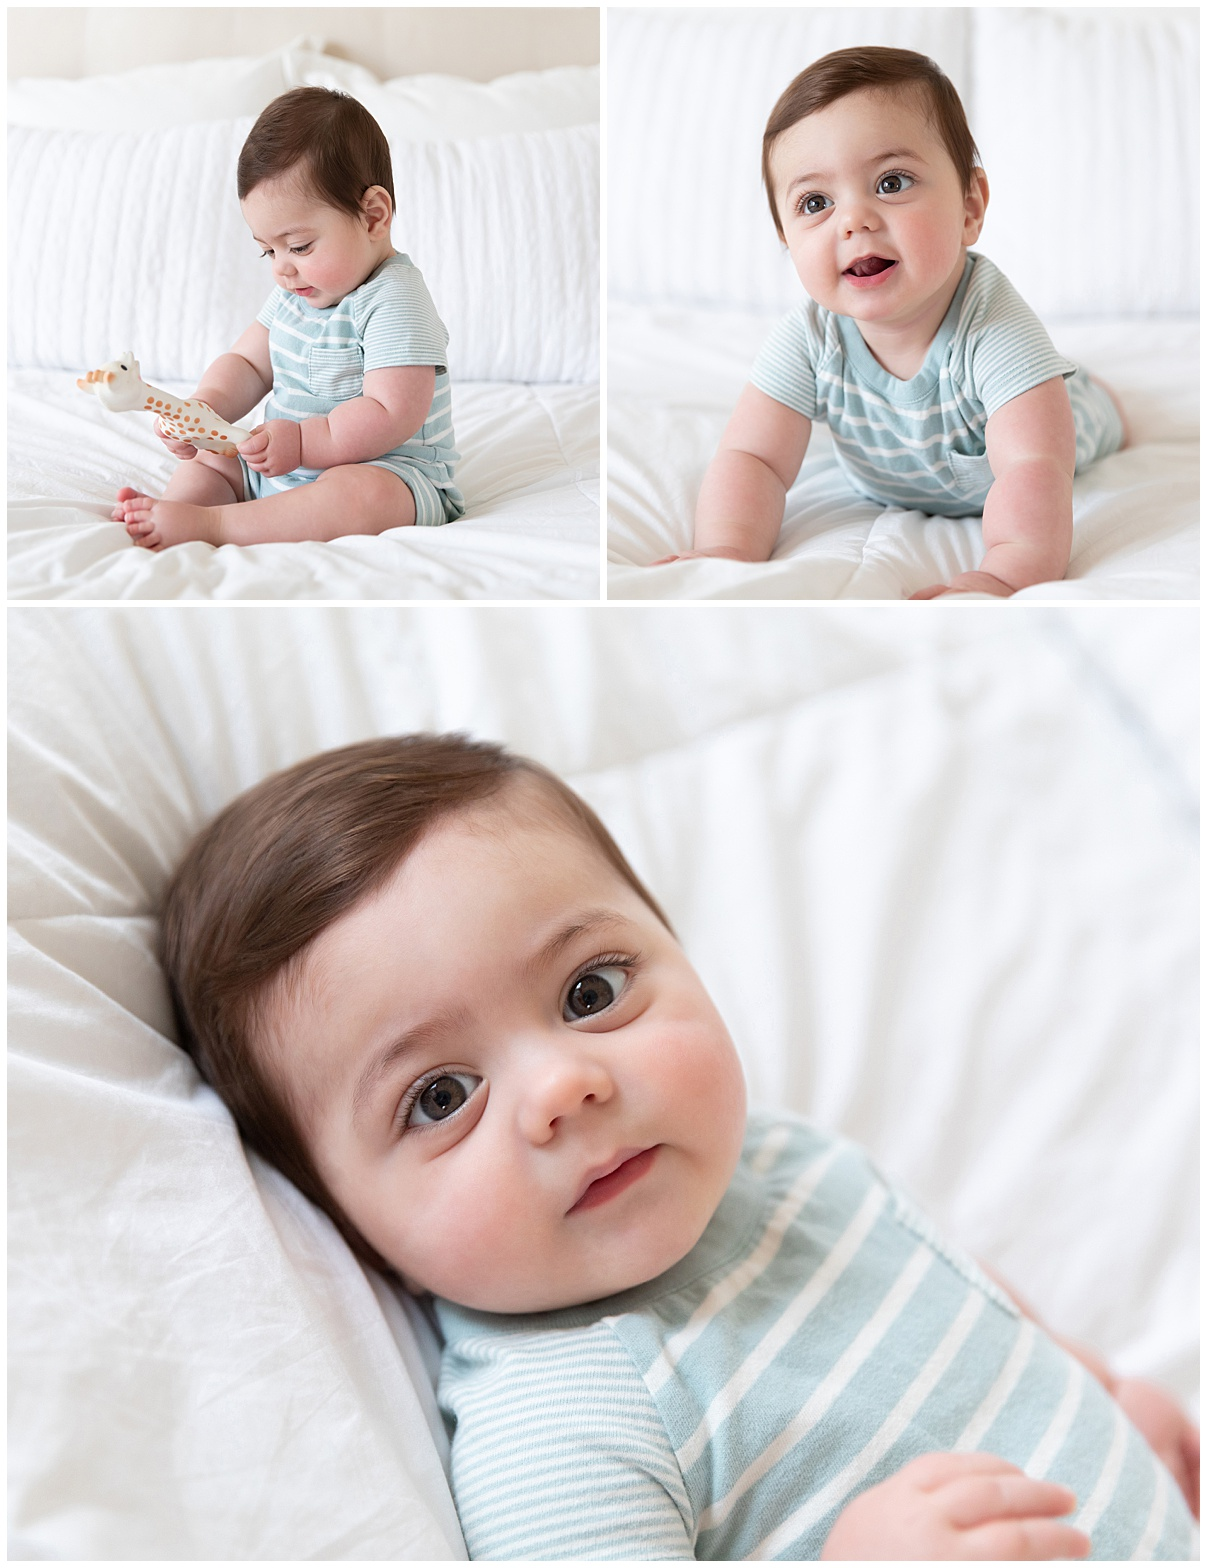 baby_portrait_session.jpg